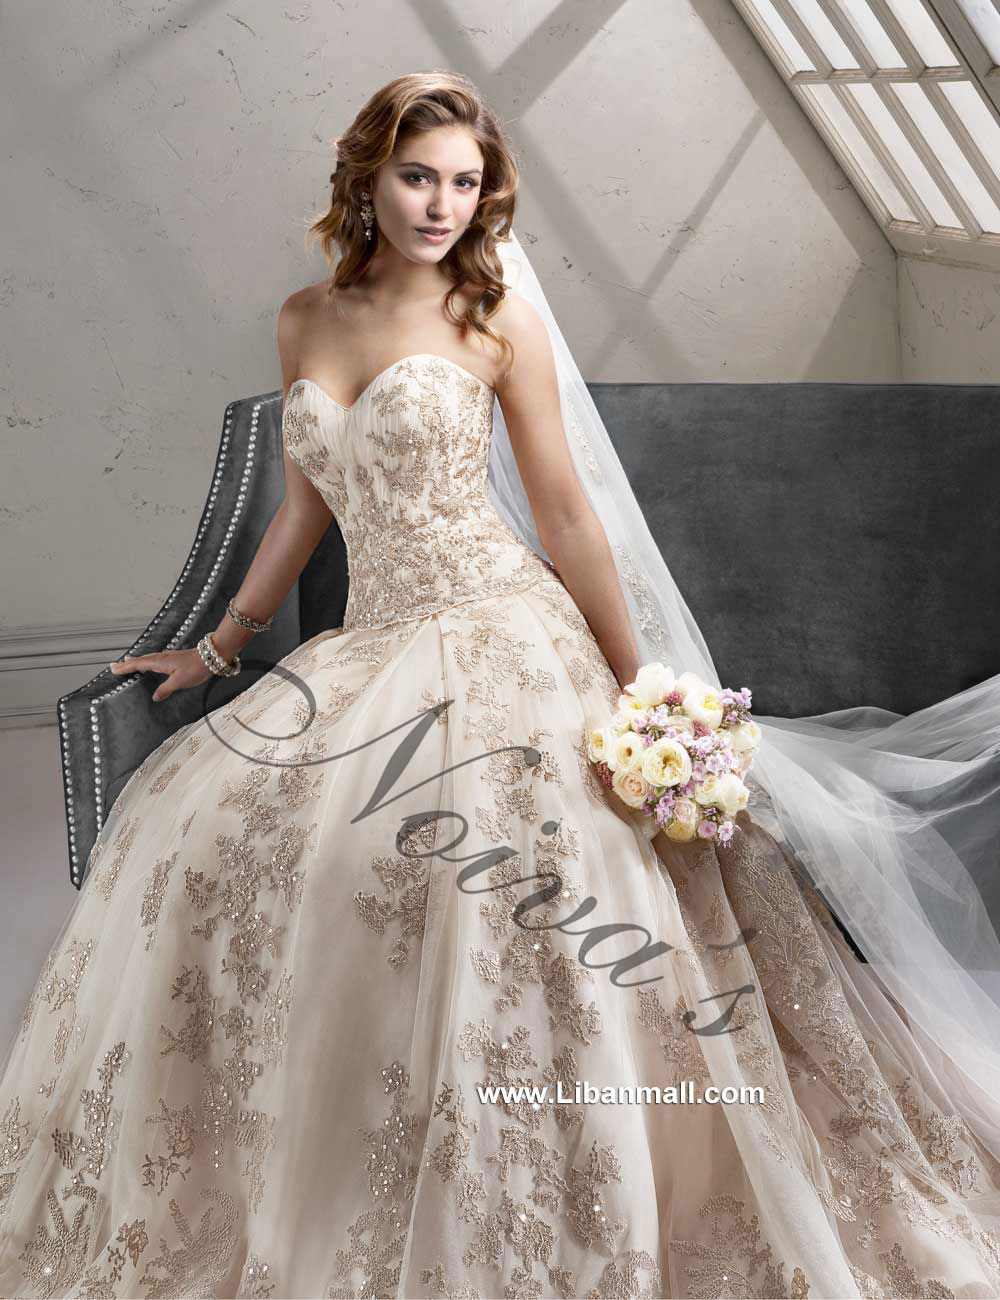 Noiva\'s - Wedding dresses in Lebanon, bridal dress, bridal store ...